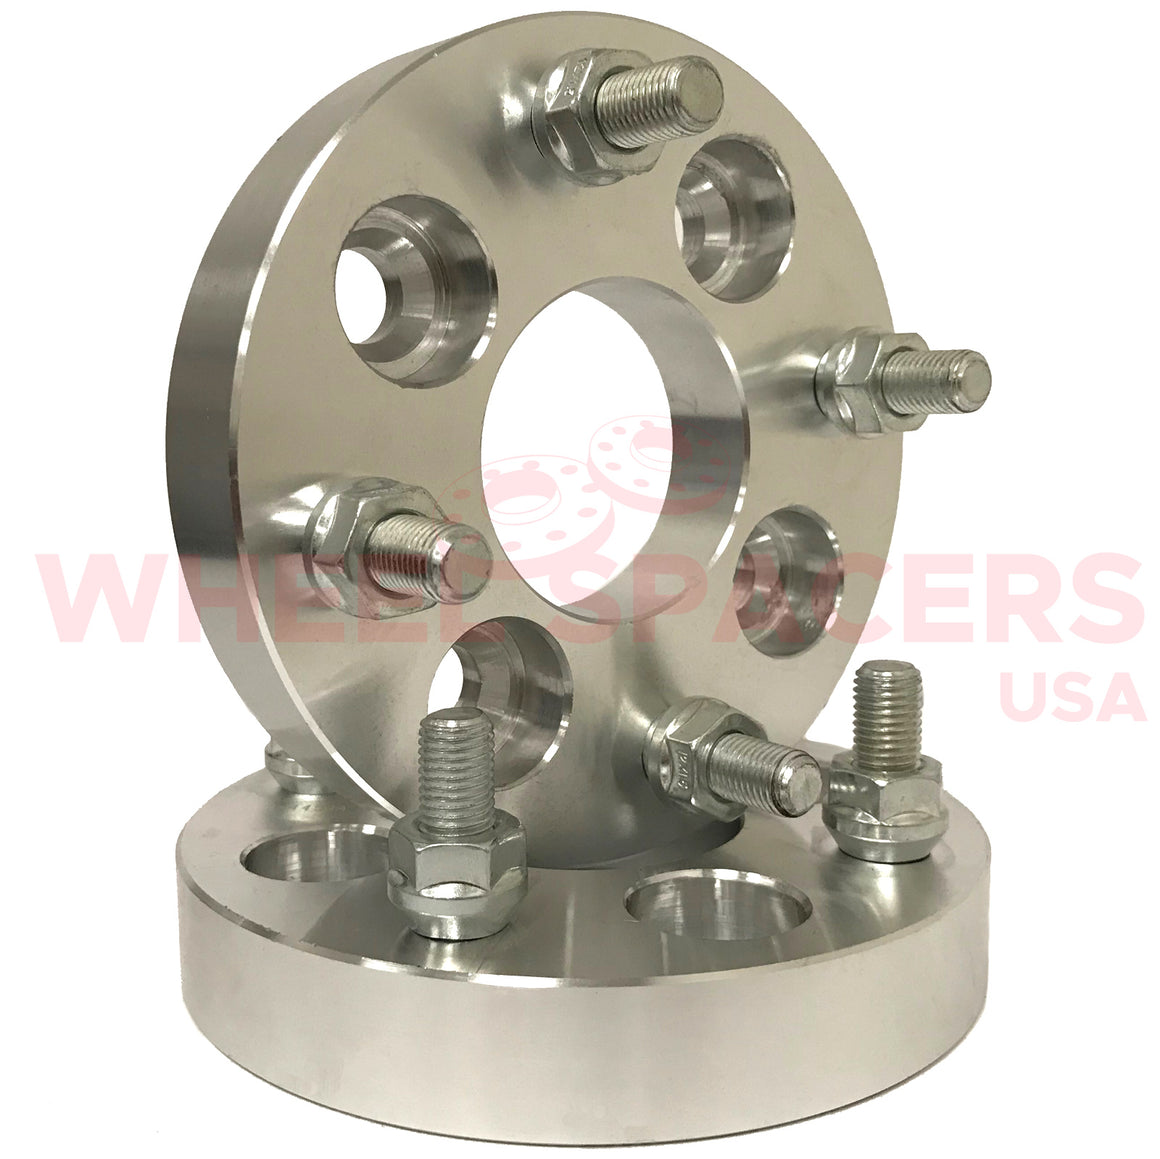 2) 4x4.5 Kia Wheel Spacers With 12x1.5 Studs For Kia Optima Spectra Image 4x114.3